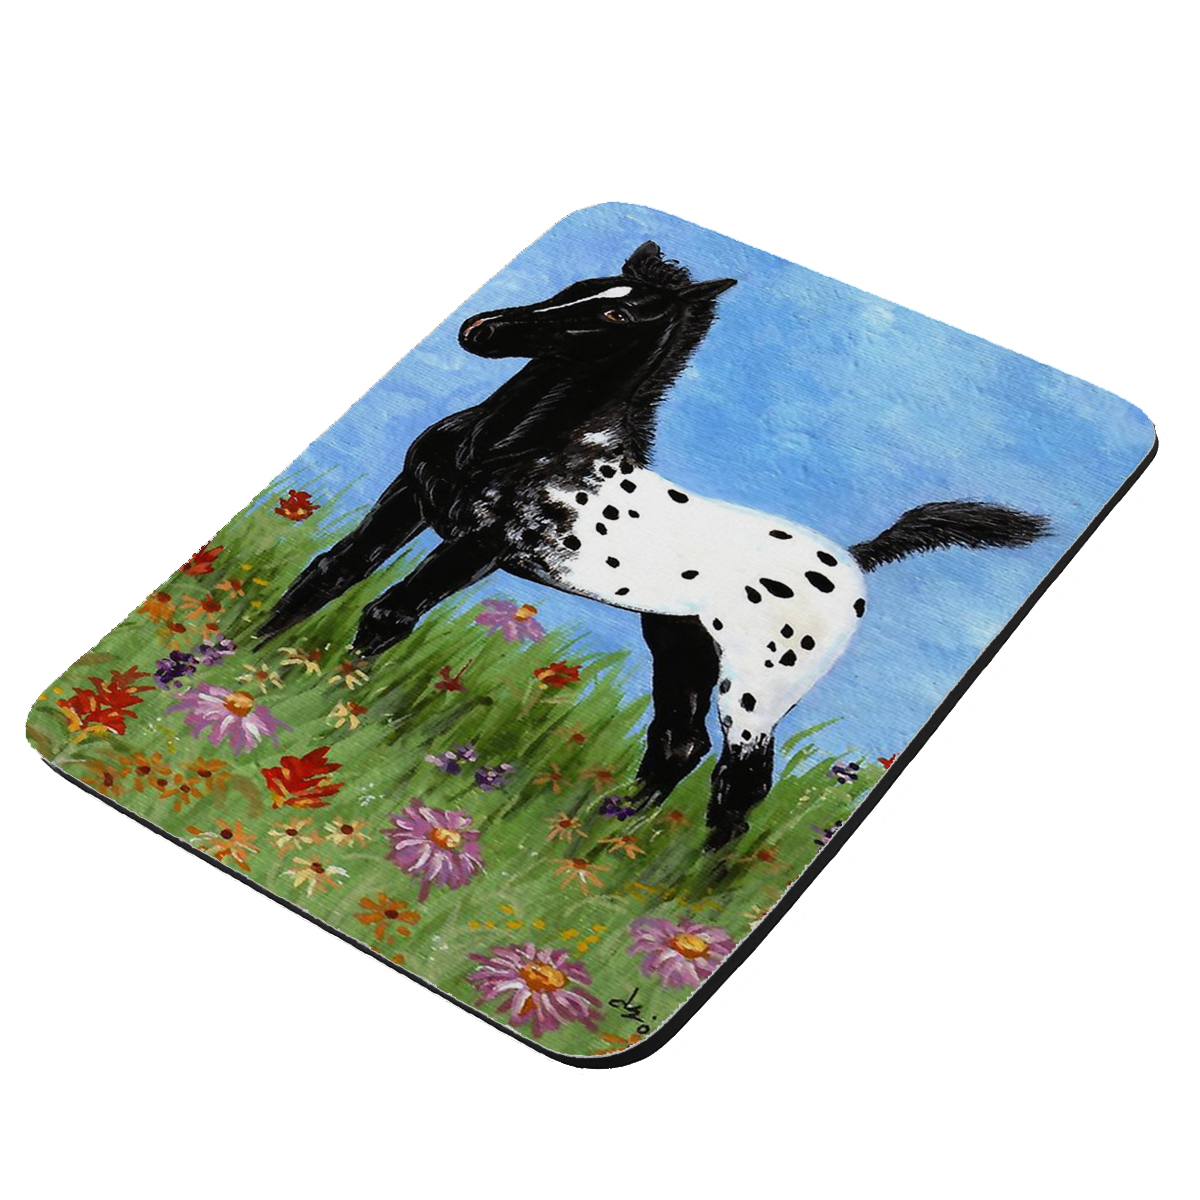 Black Blanket Appaloosa Foal & Western Wildflowers Horse Art by Denise Every - KuzmarK Mousepad / Hot Pad / Trivet